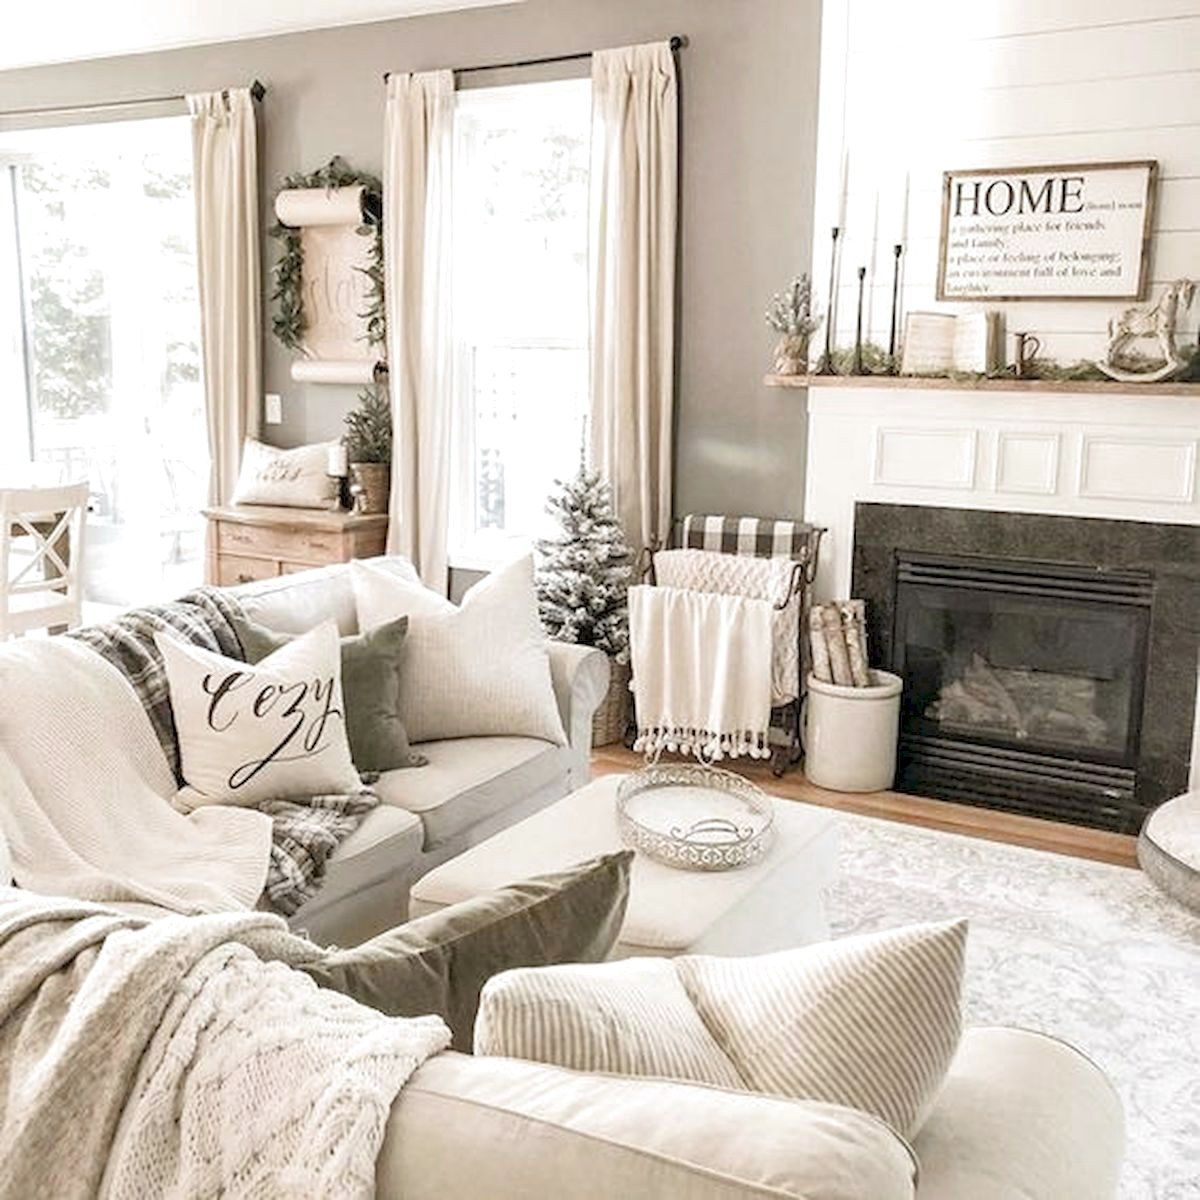 101 Best Farmhouse Living Room Decoration Ideas Farmhouselivingroom In 2020 Farm House Living Room Farmhouse Living Room Furniture Simple Living Room #simple #farmhouse #living #room #decor